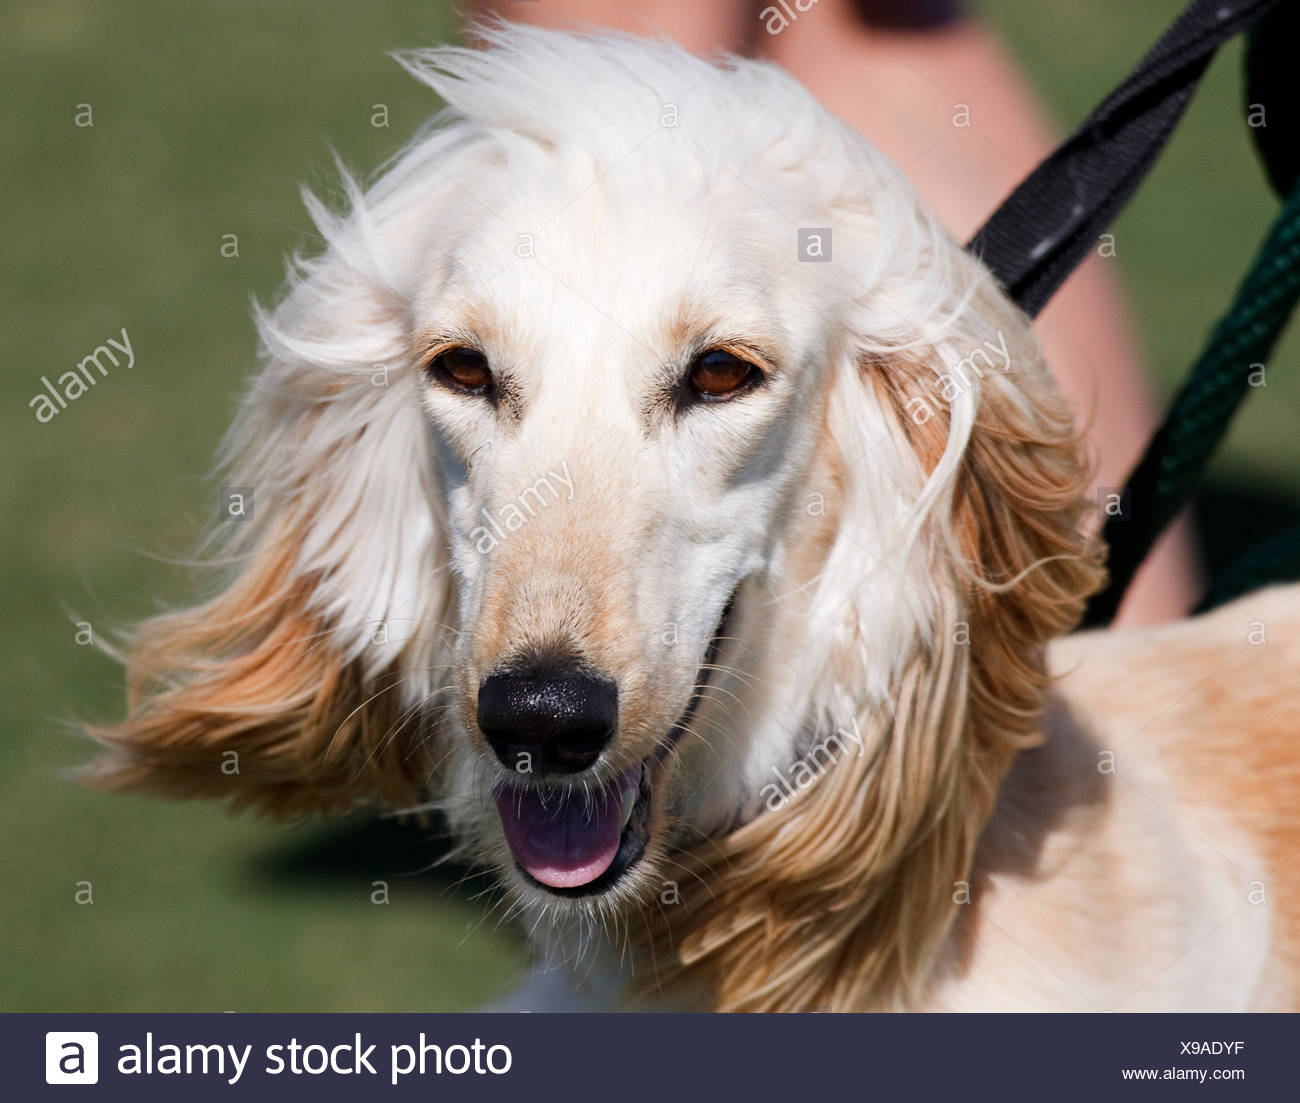 closeup pet dog afghan hound canine aristocrat head closeup animal pet mammal - Stock Image